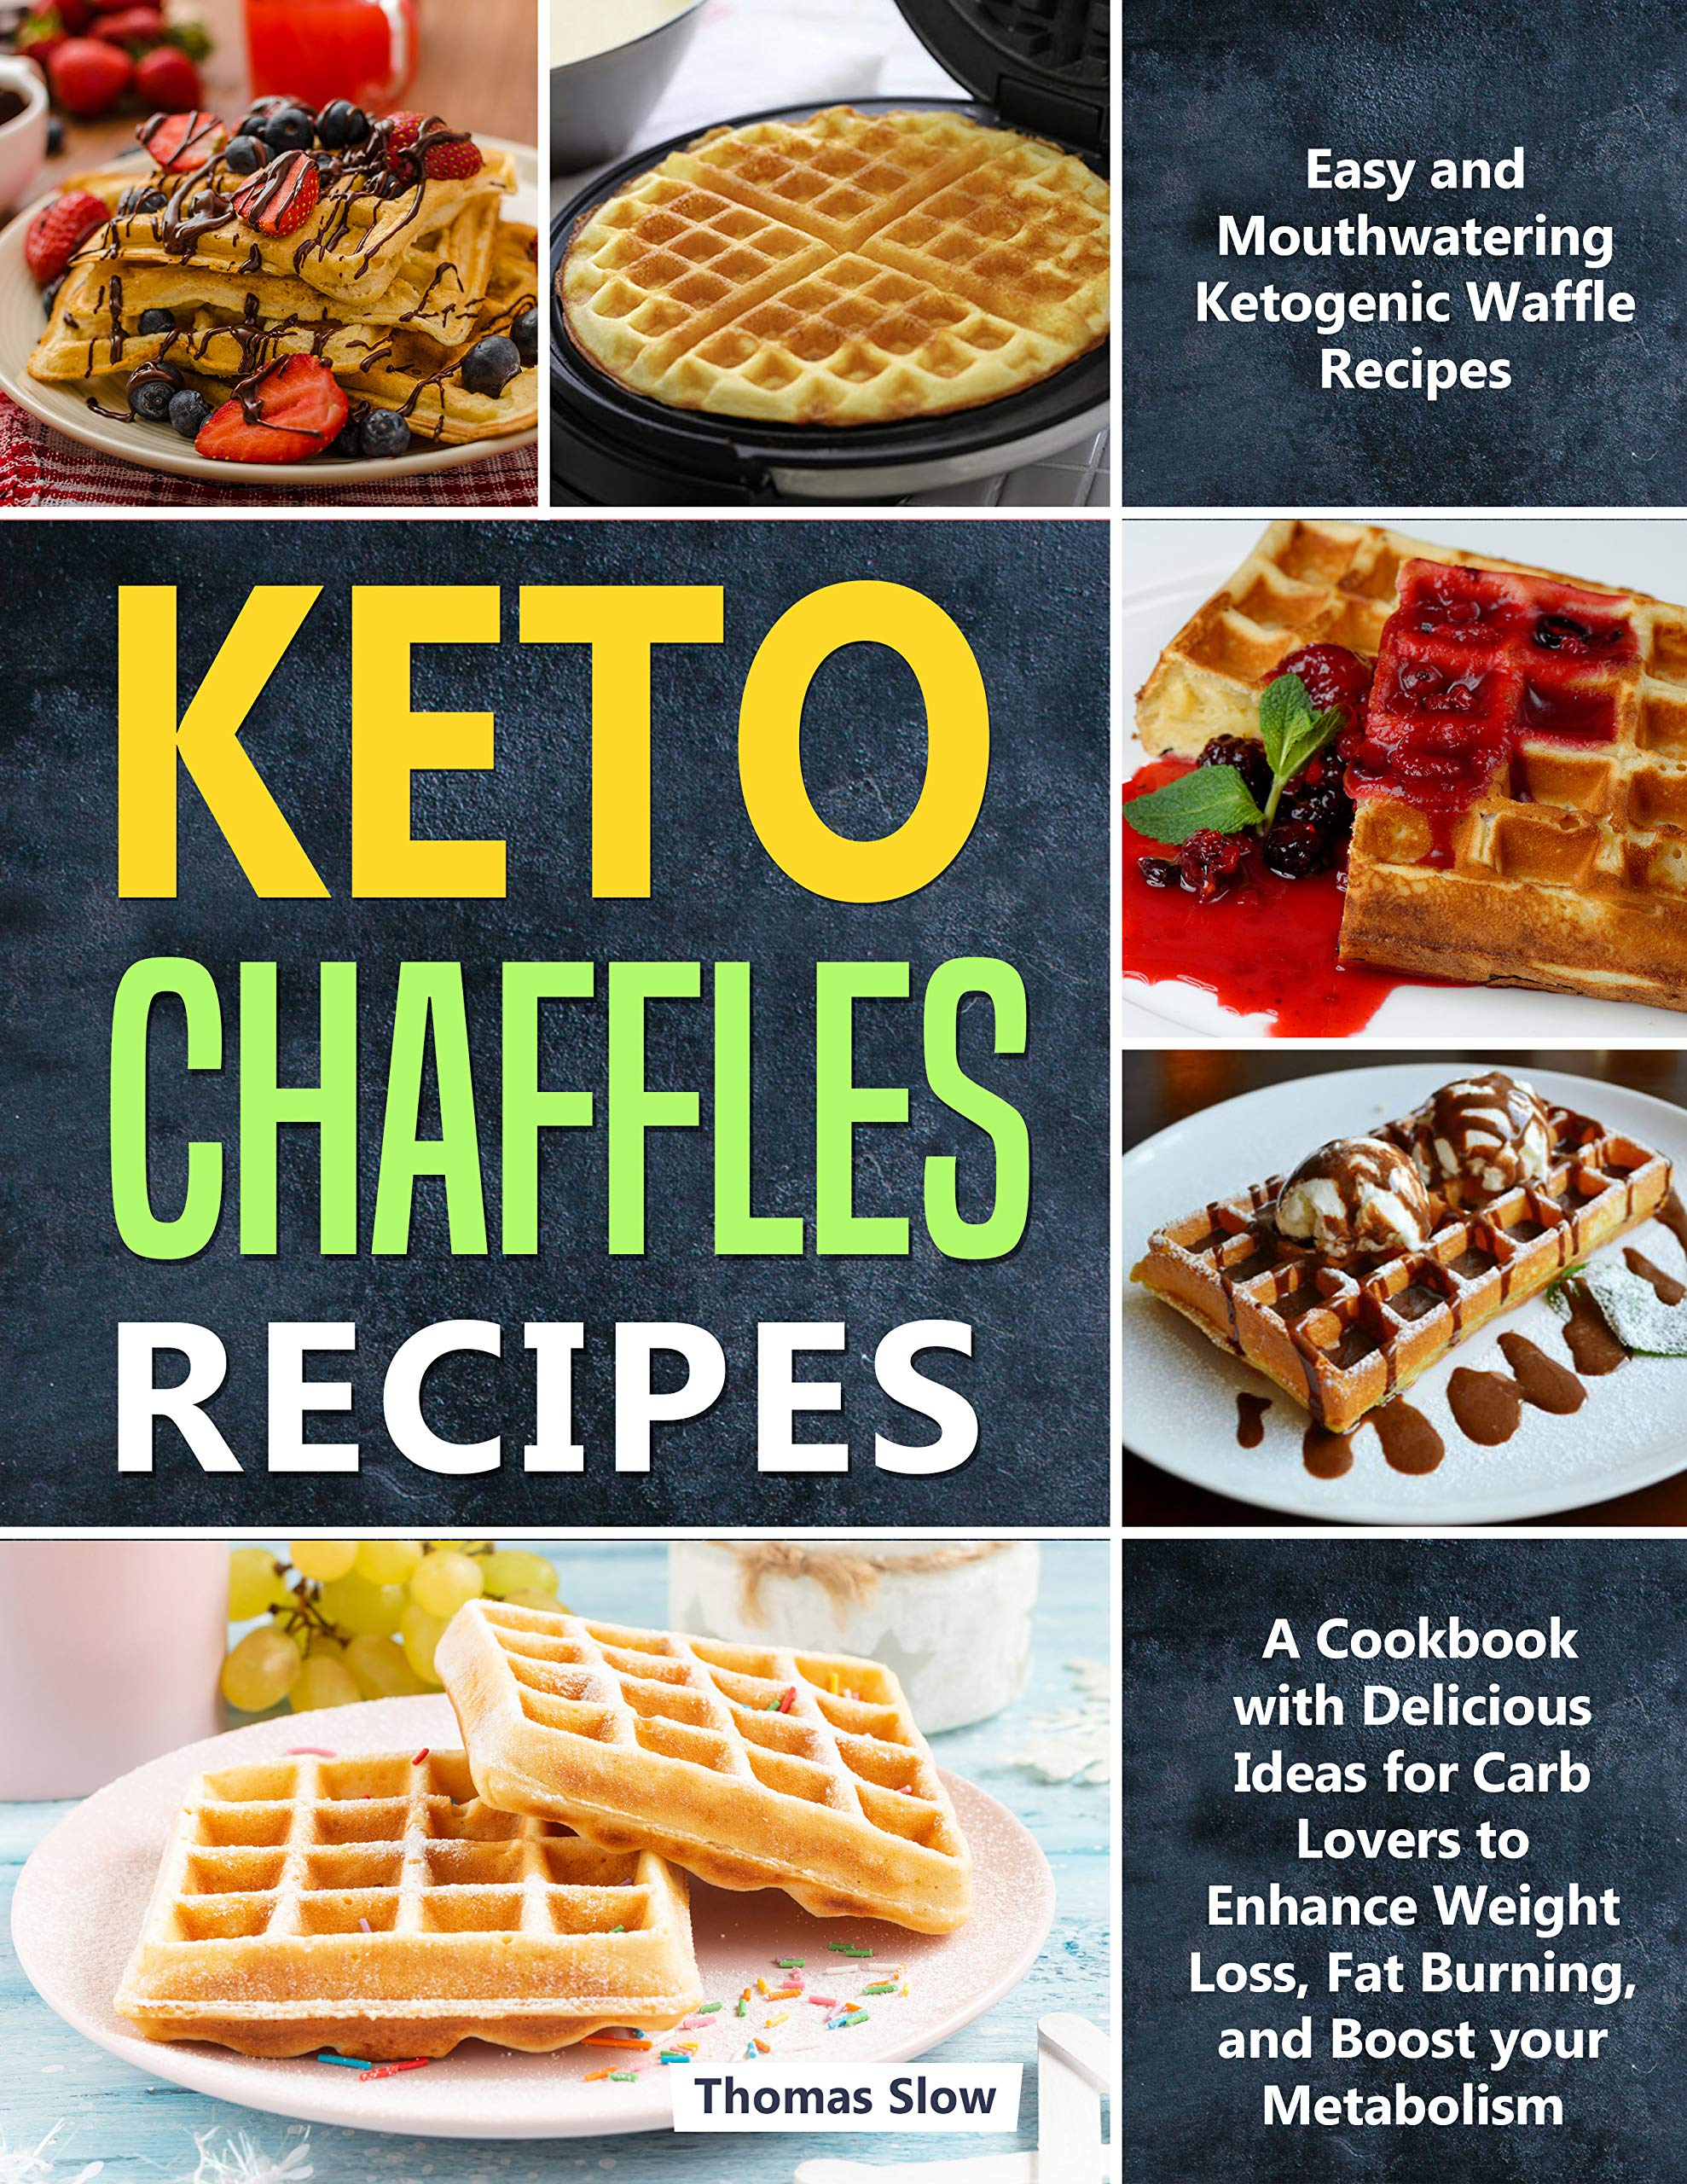 Keto Chaffles Recipes: Easy and Mouthwatering Ketogenic Waffle Recipes | A Cookbook with Delicious Ideas for Carb Lovers to Enhance Weight Loss, Fat Burning, and Boost your Metabolism